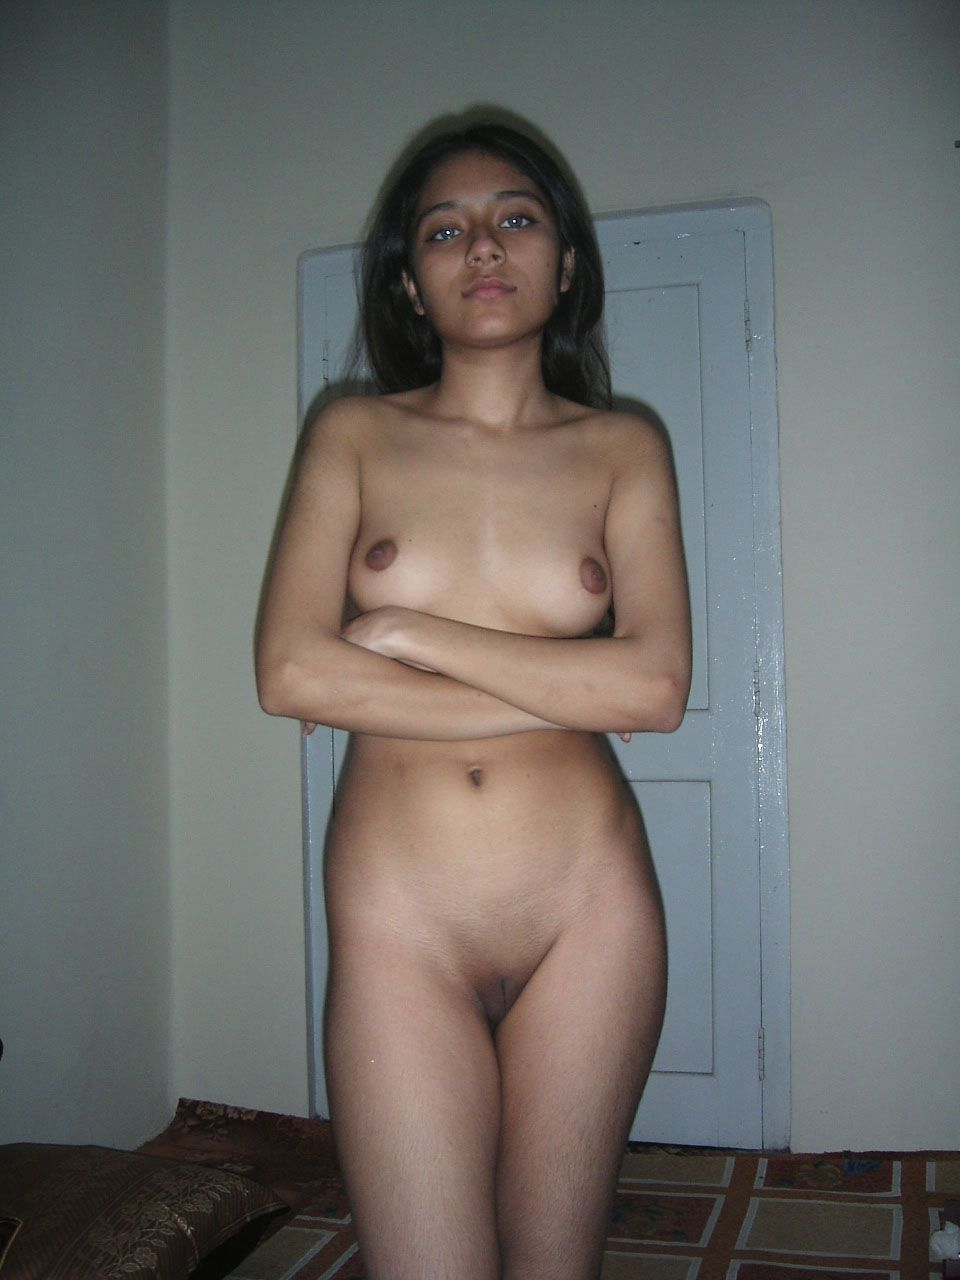 Xxx old gujarati lady photos